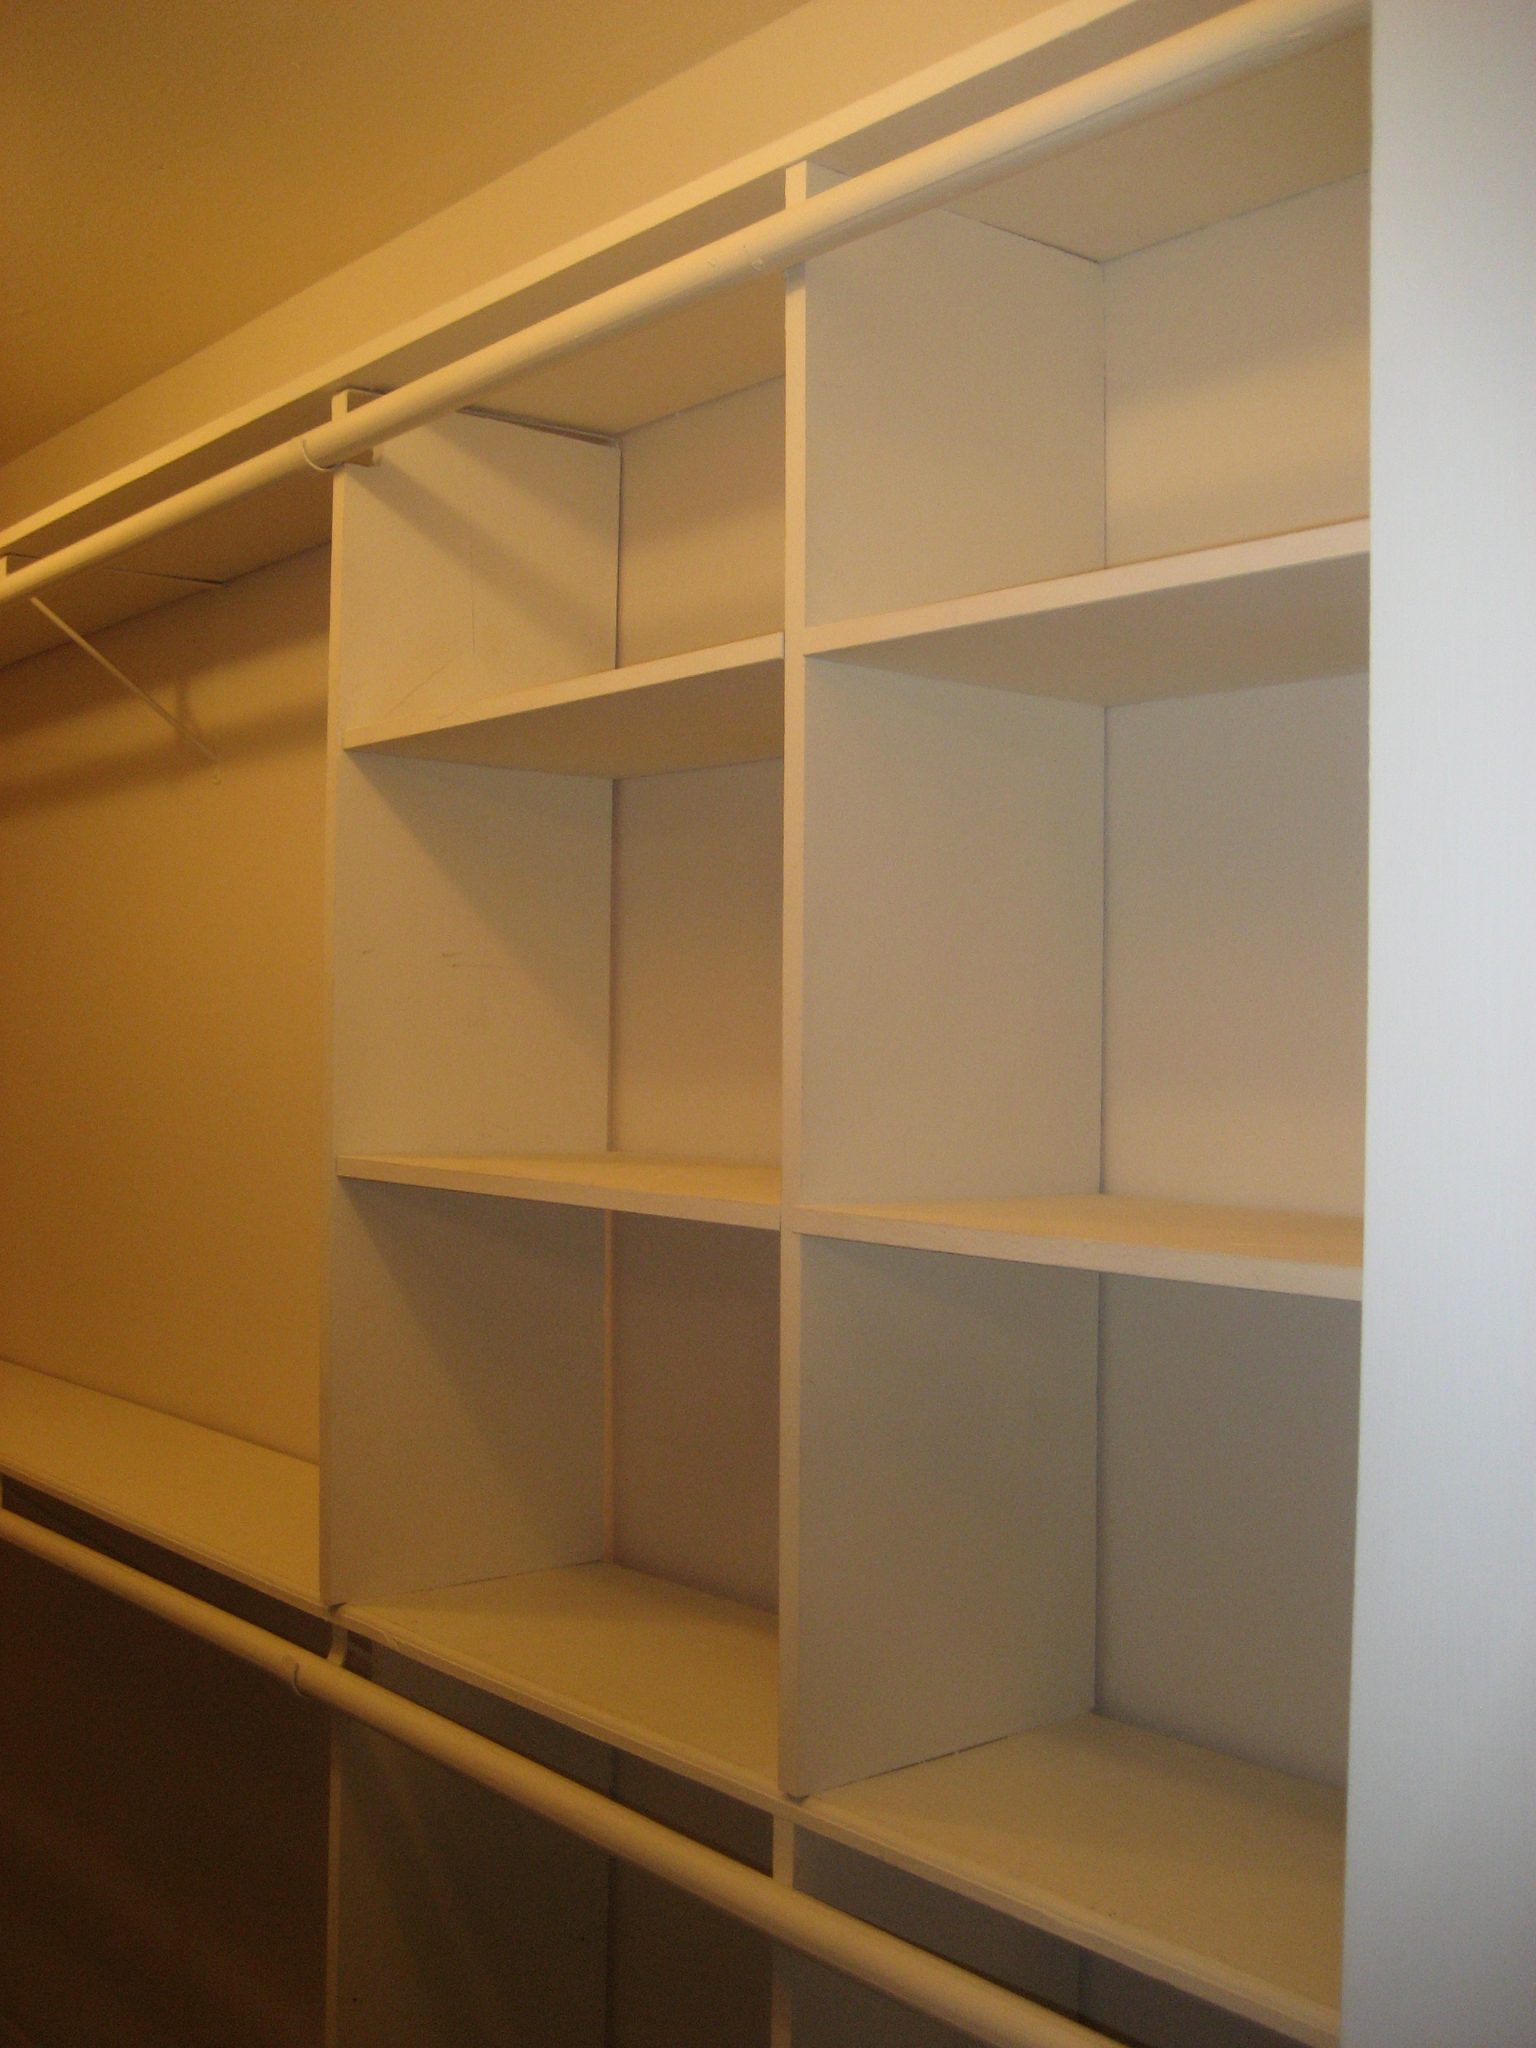 Closet With Rod Going Across Built In Cubbies